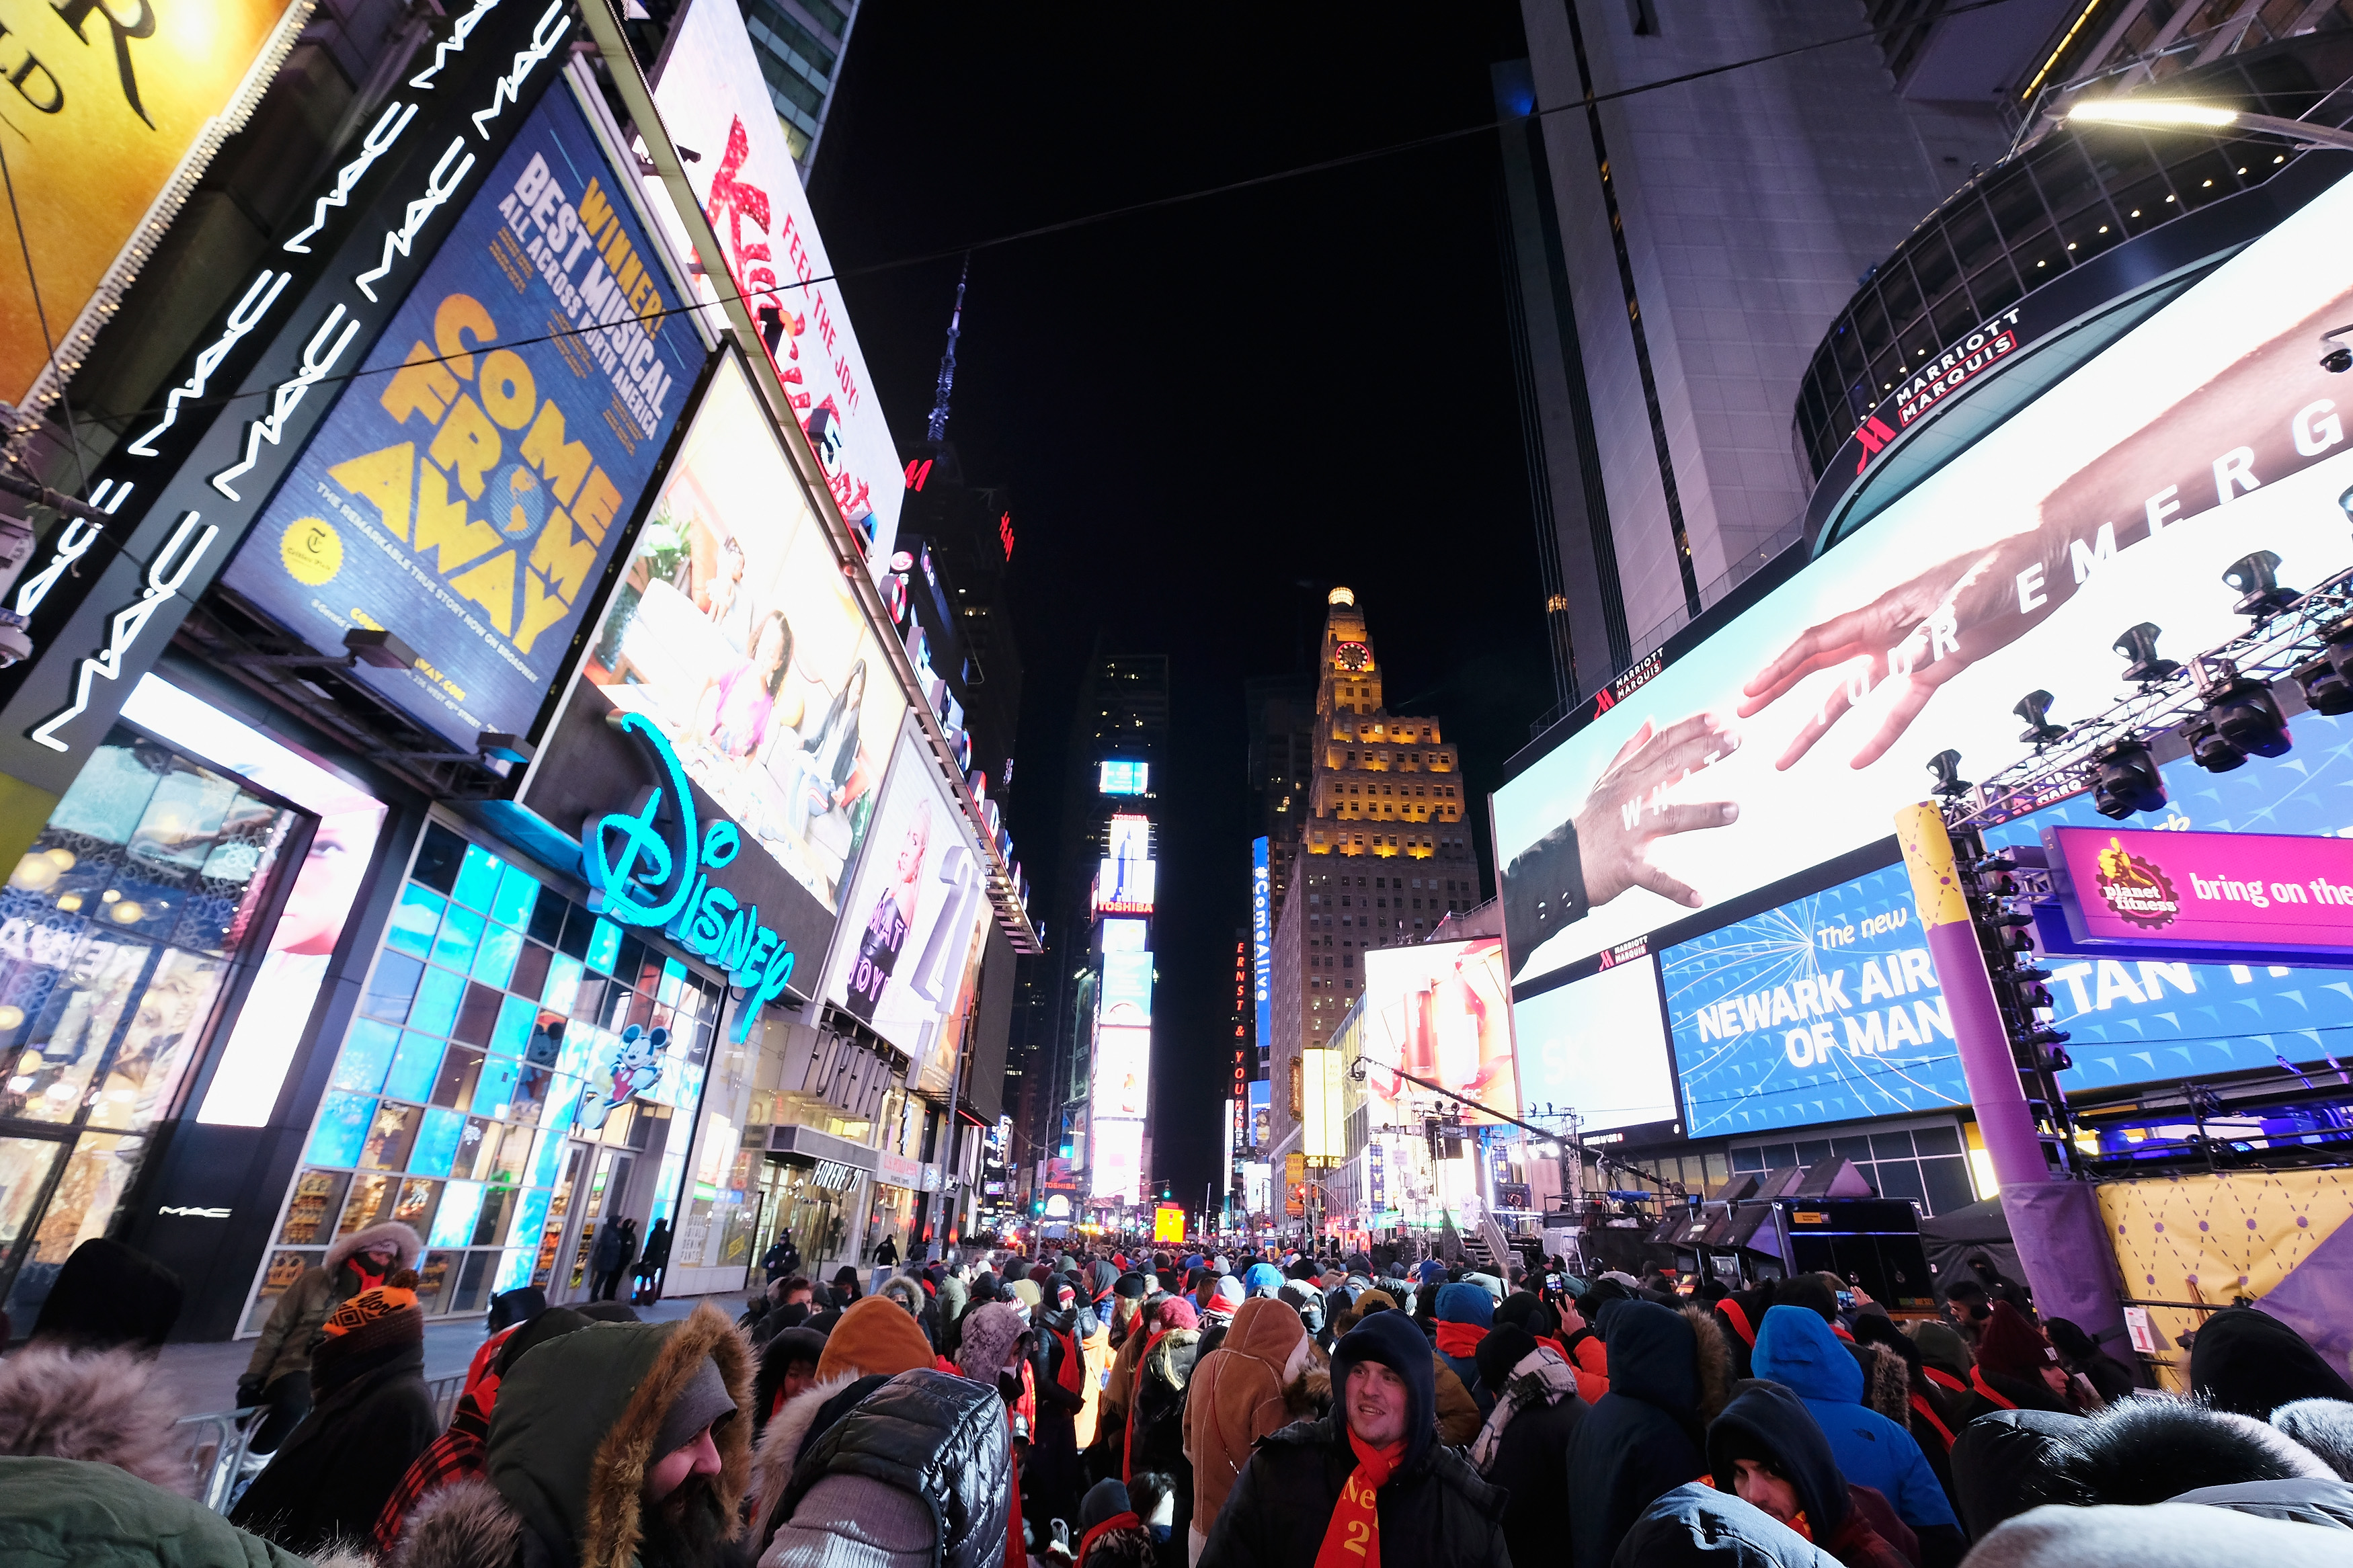 New Year's Eve 2018 in Times Square - Atmosphere